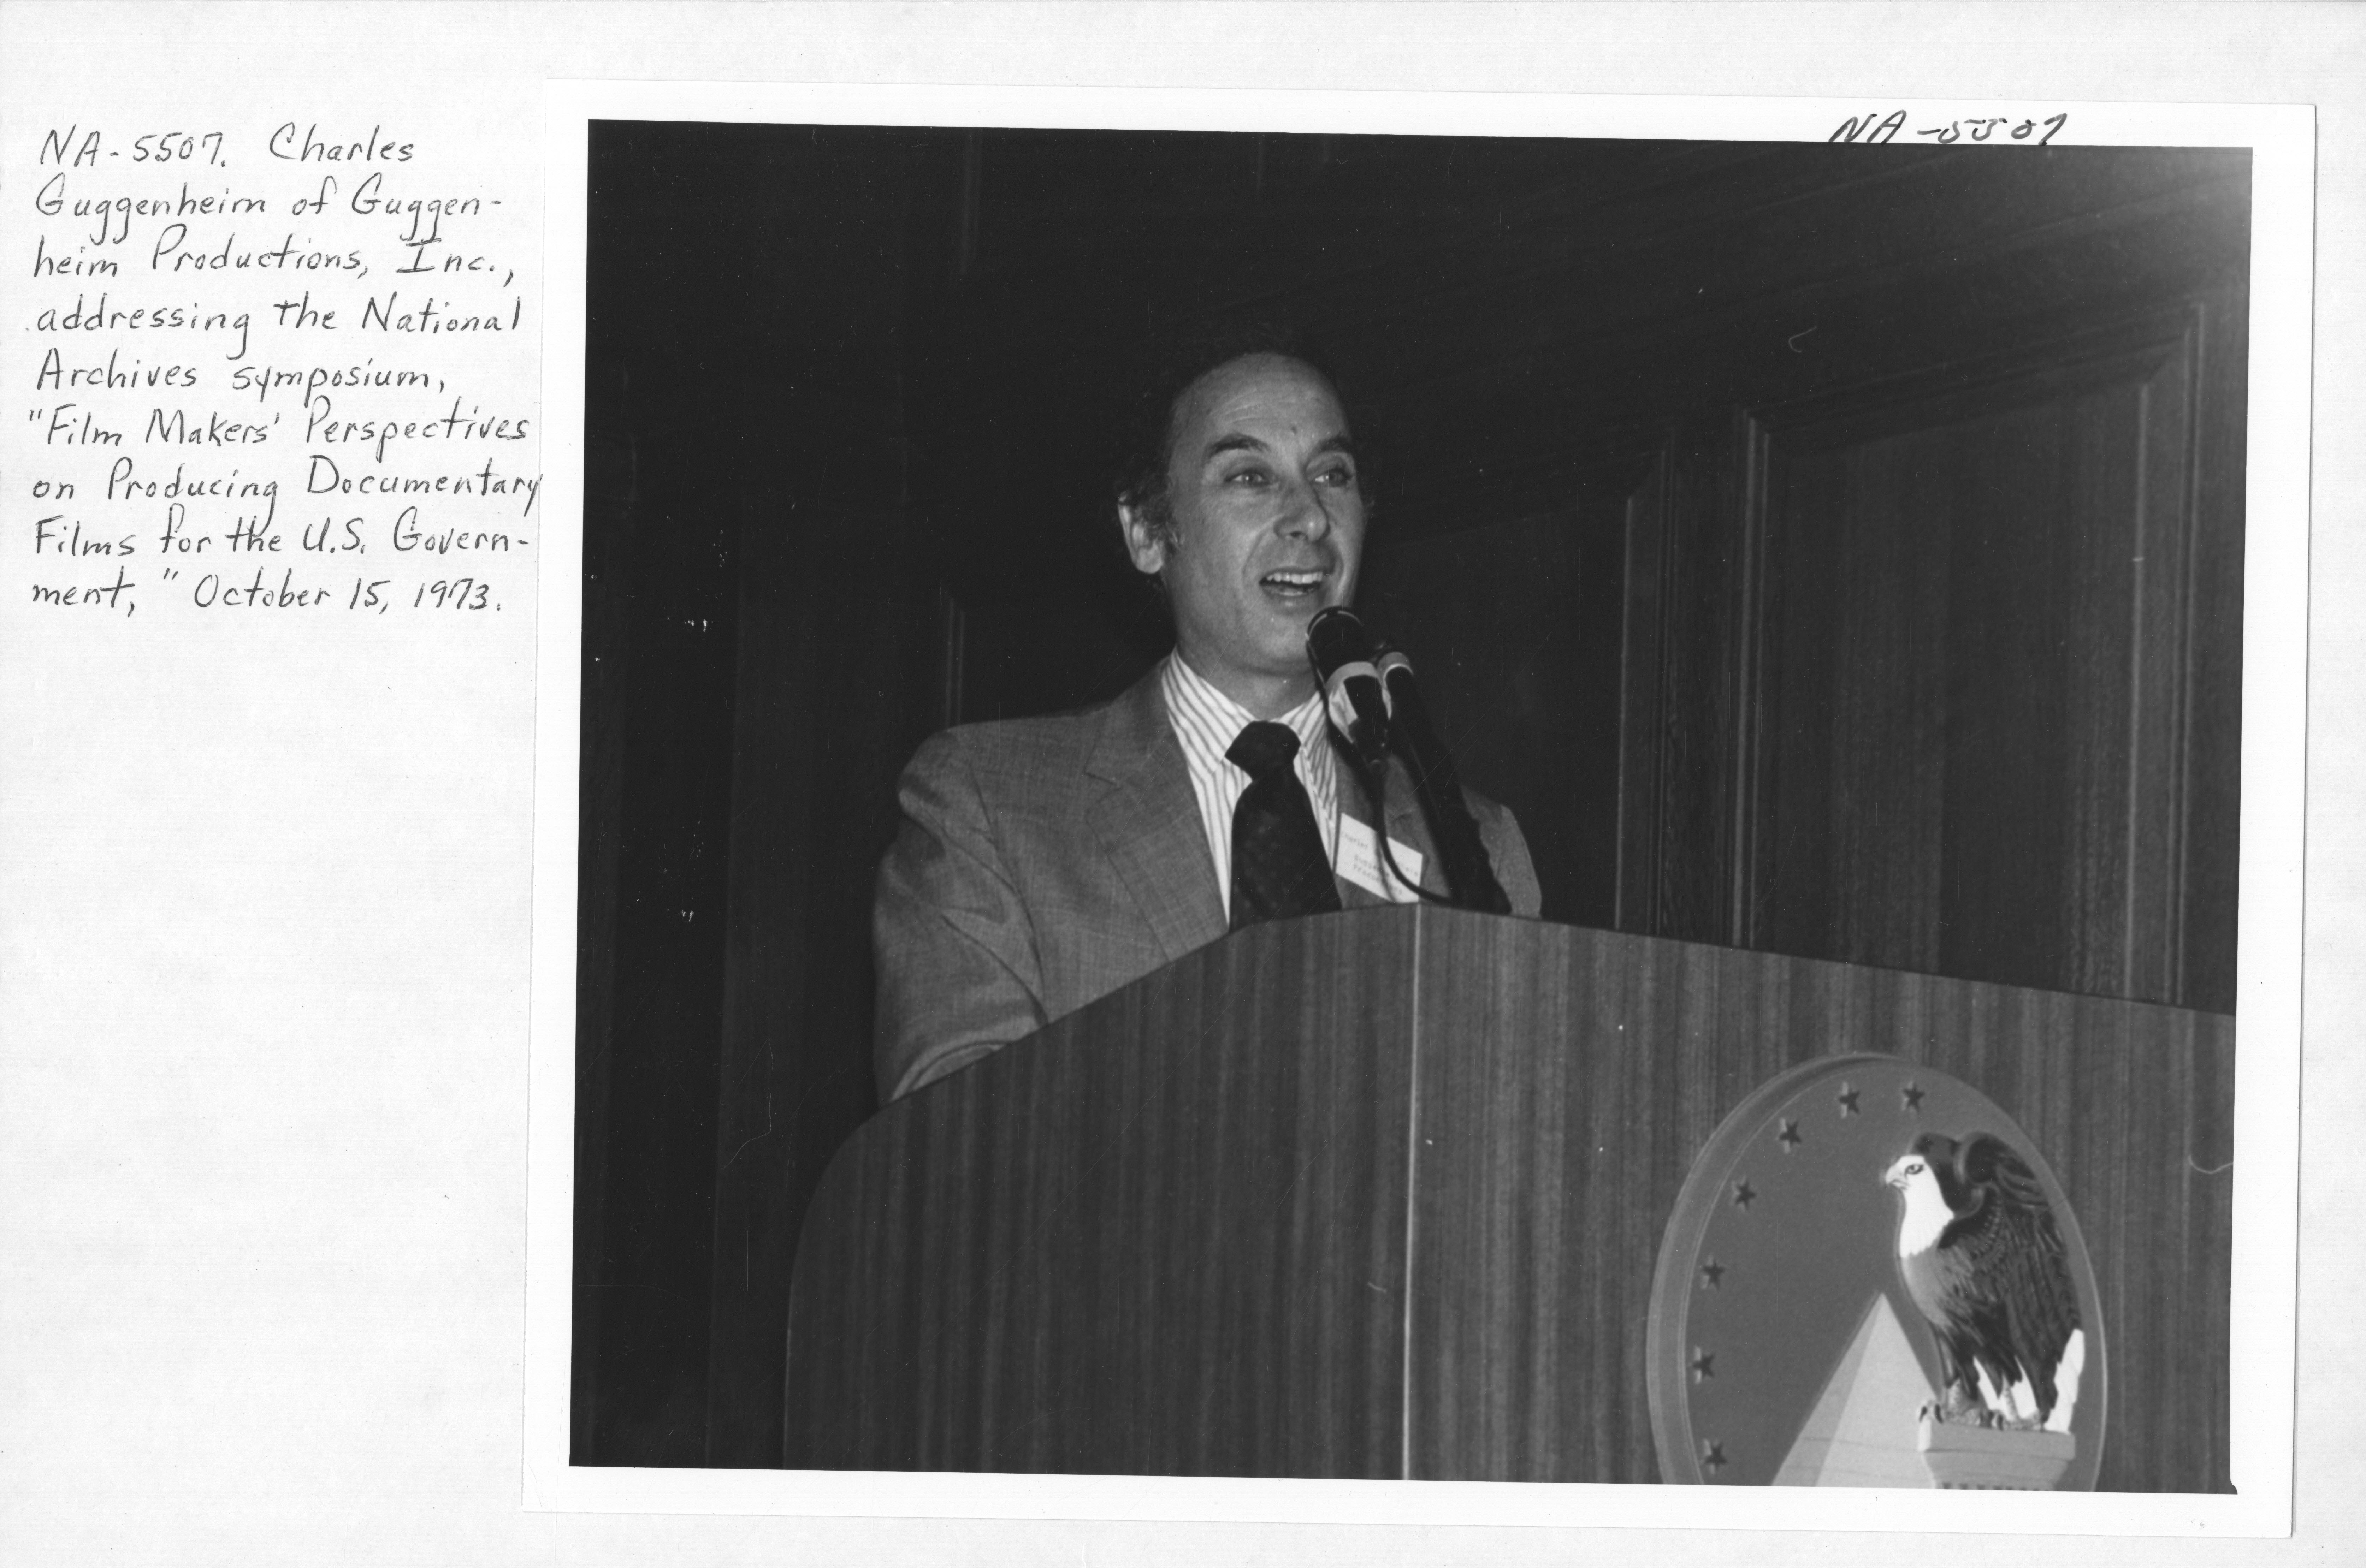 Photograph of Charles Guggenheim Addressing the National Archives Symposium on